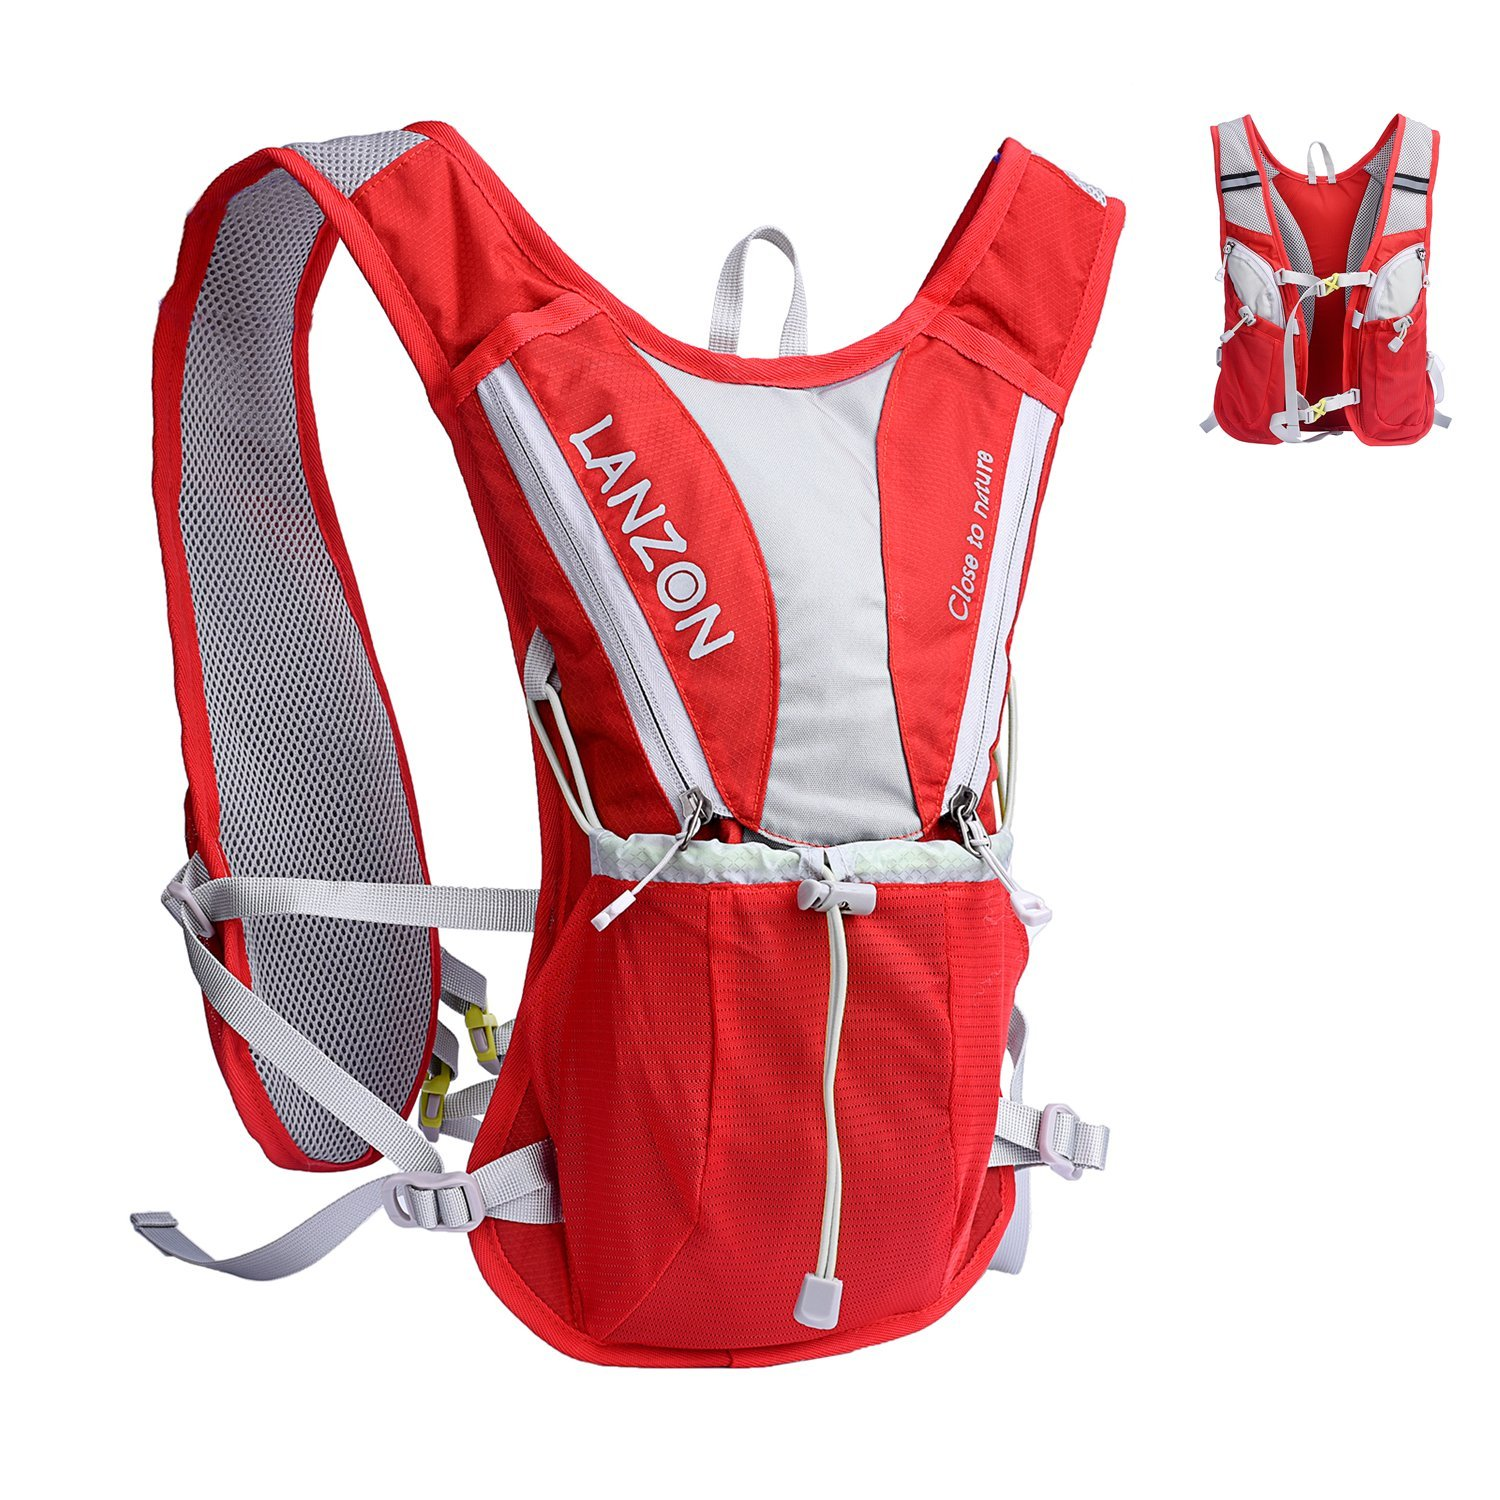 LANZON 2L Hydration Vest (NO Bladder), Marathon Running Pack, Hiking Cycling Backpack - Red